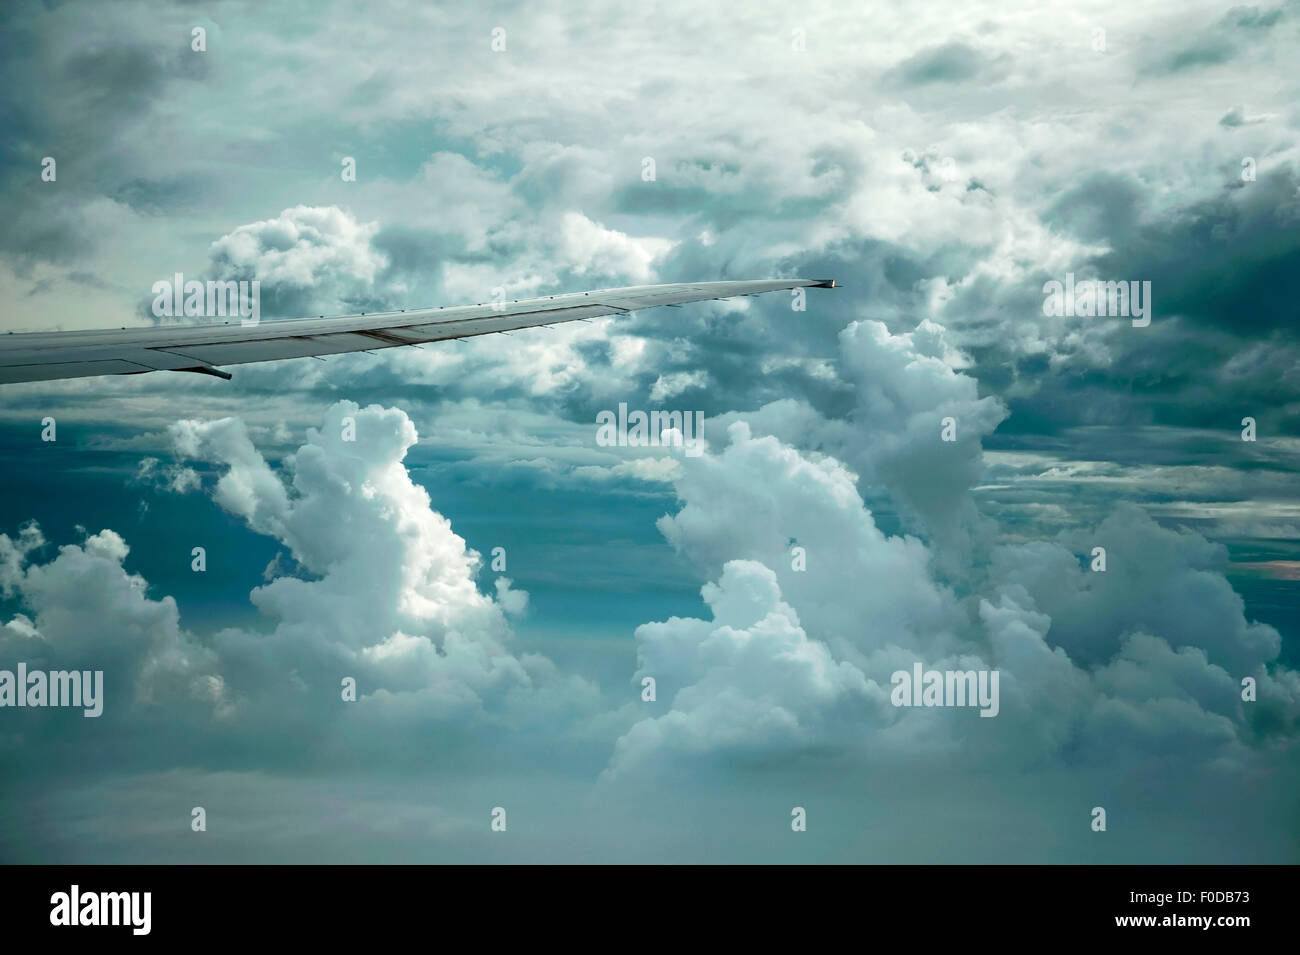 Dramatic cloud formations and the wing of a Boeing 777-300 - Stock Image